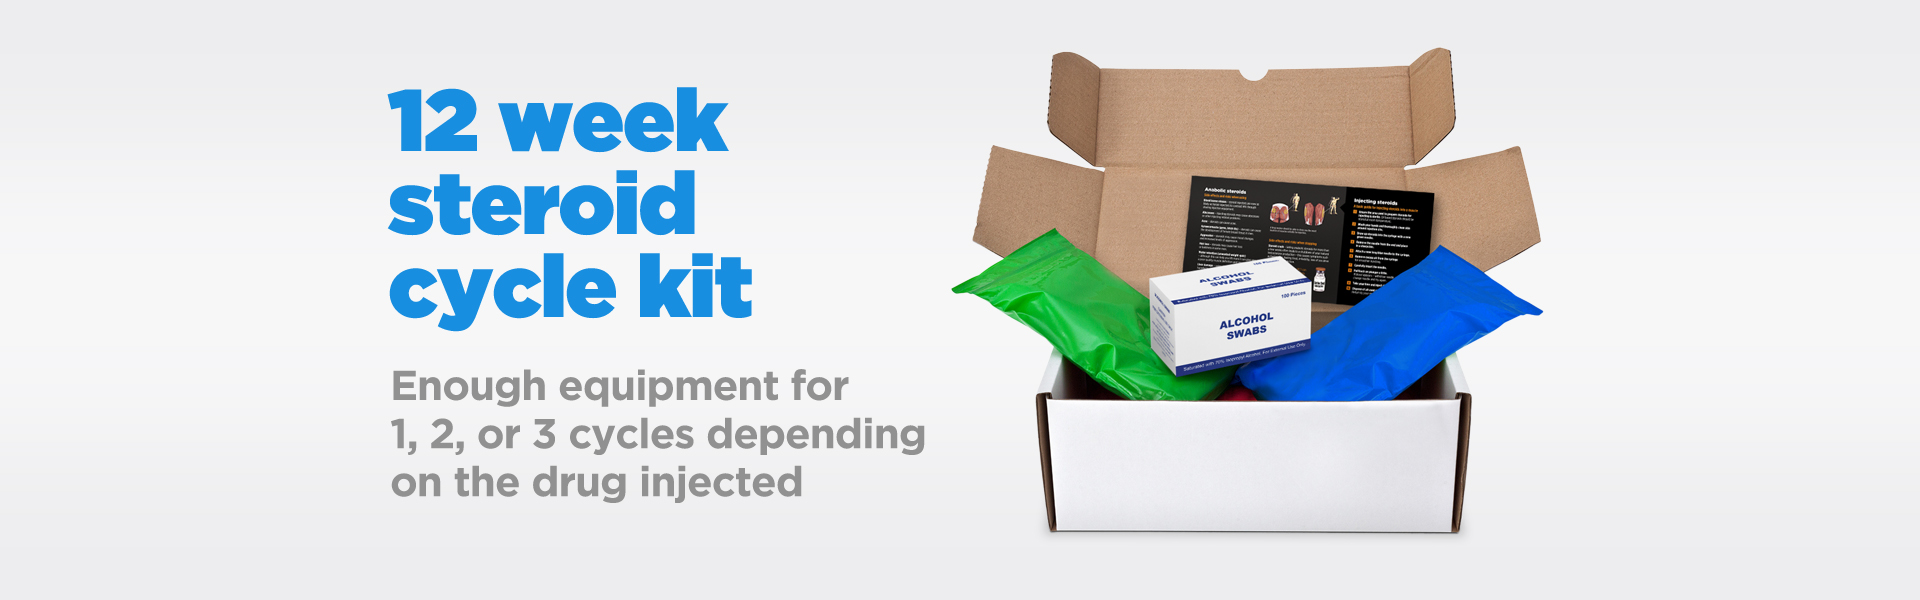 12 week injection cycle kit